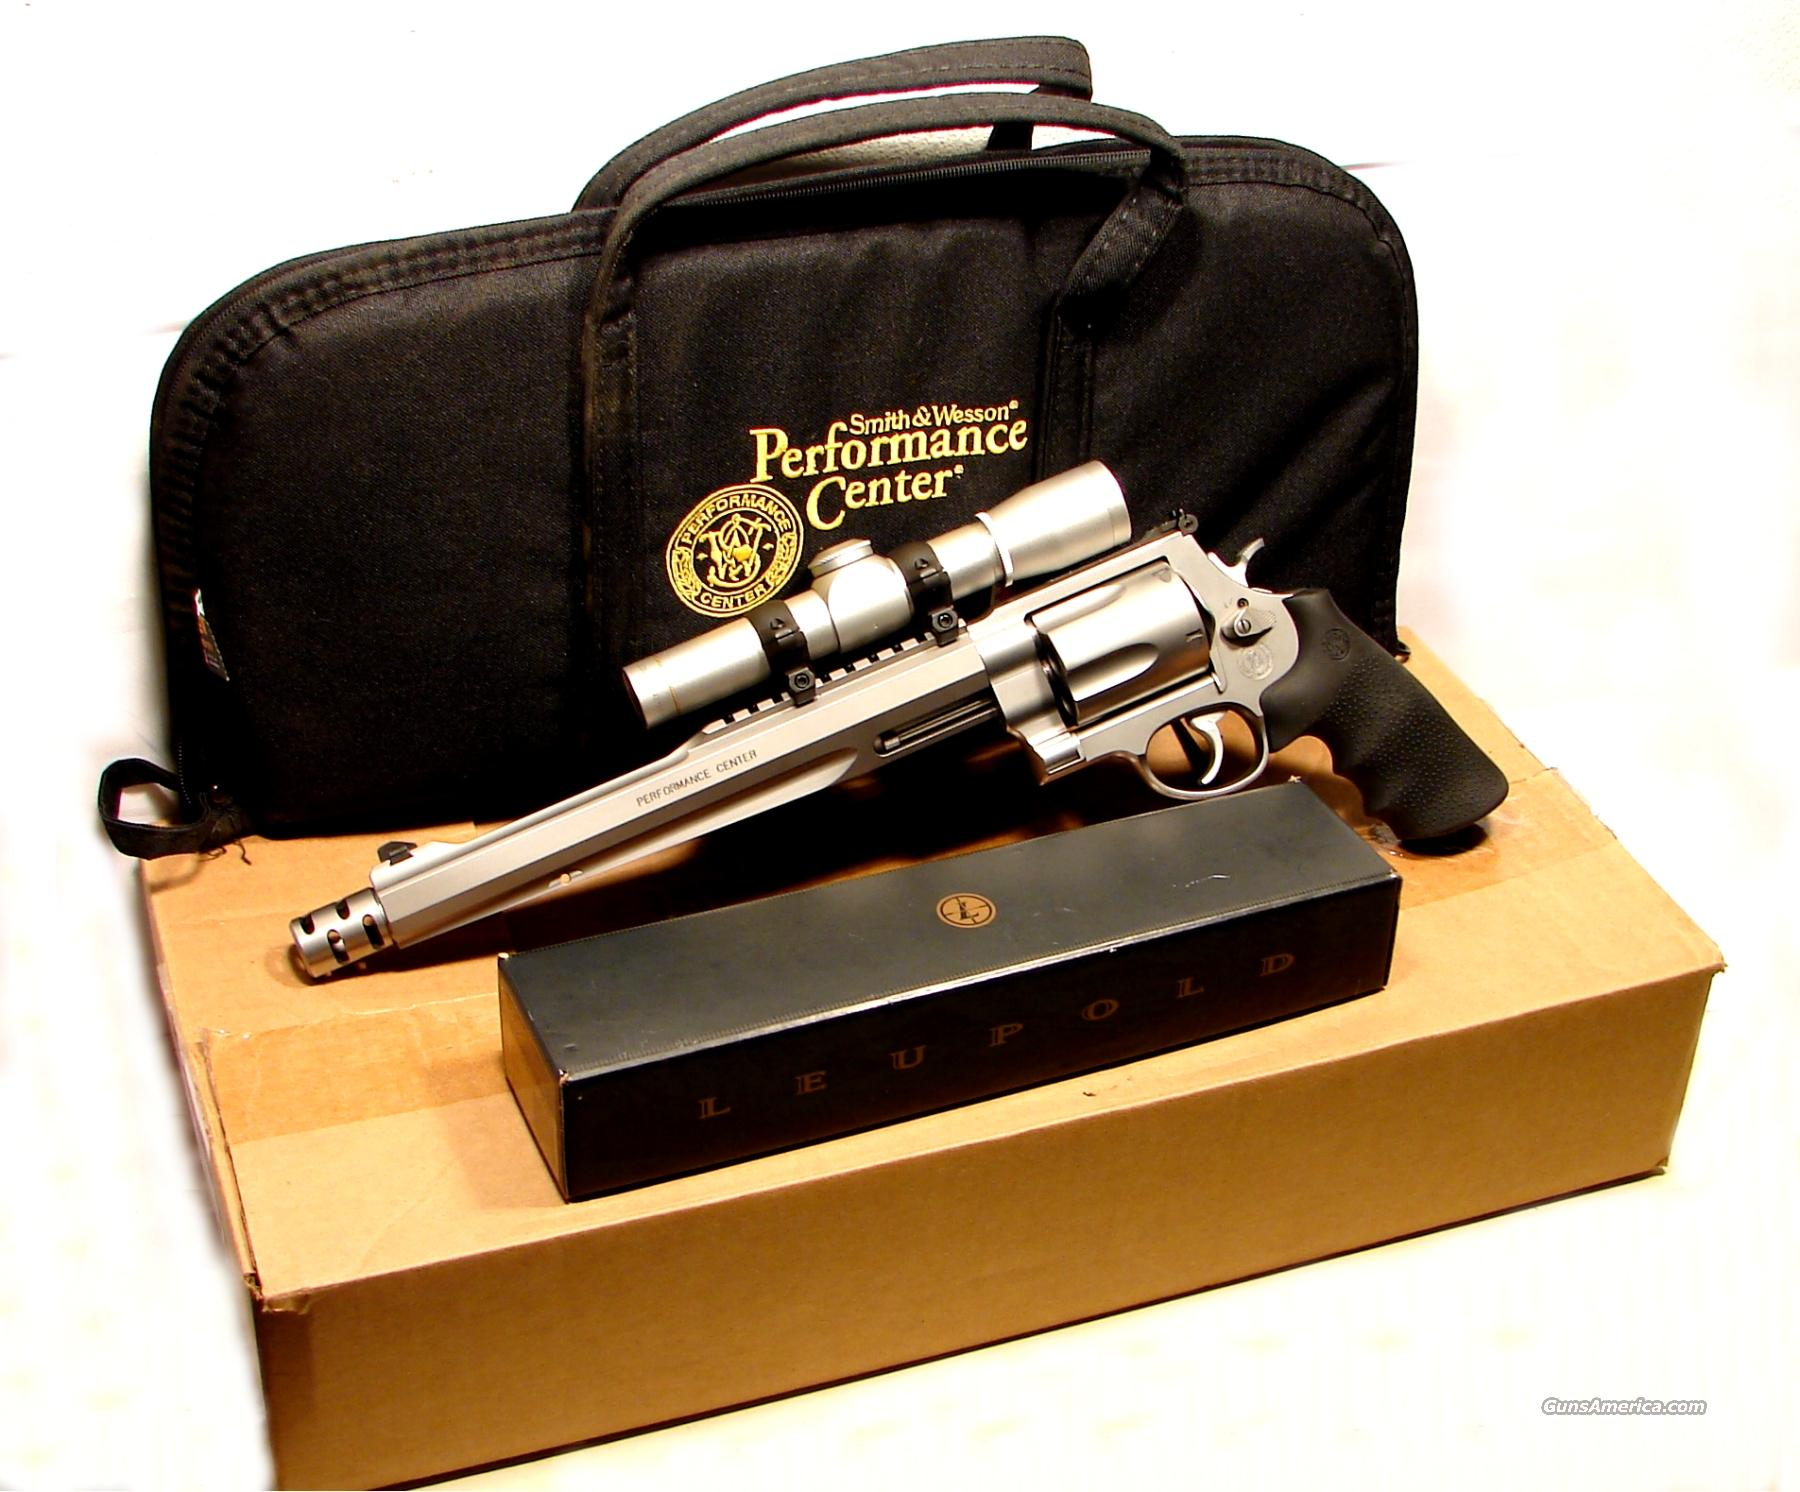 SMITH Wesson PC 500 S&W Leupold Scope LIKE New  Guns > Pistols > Smith & Wesson Revolvers > Performance Center